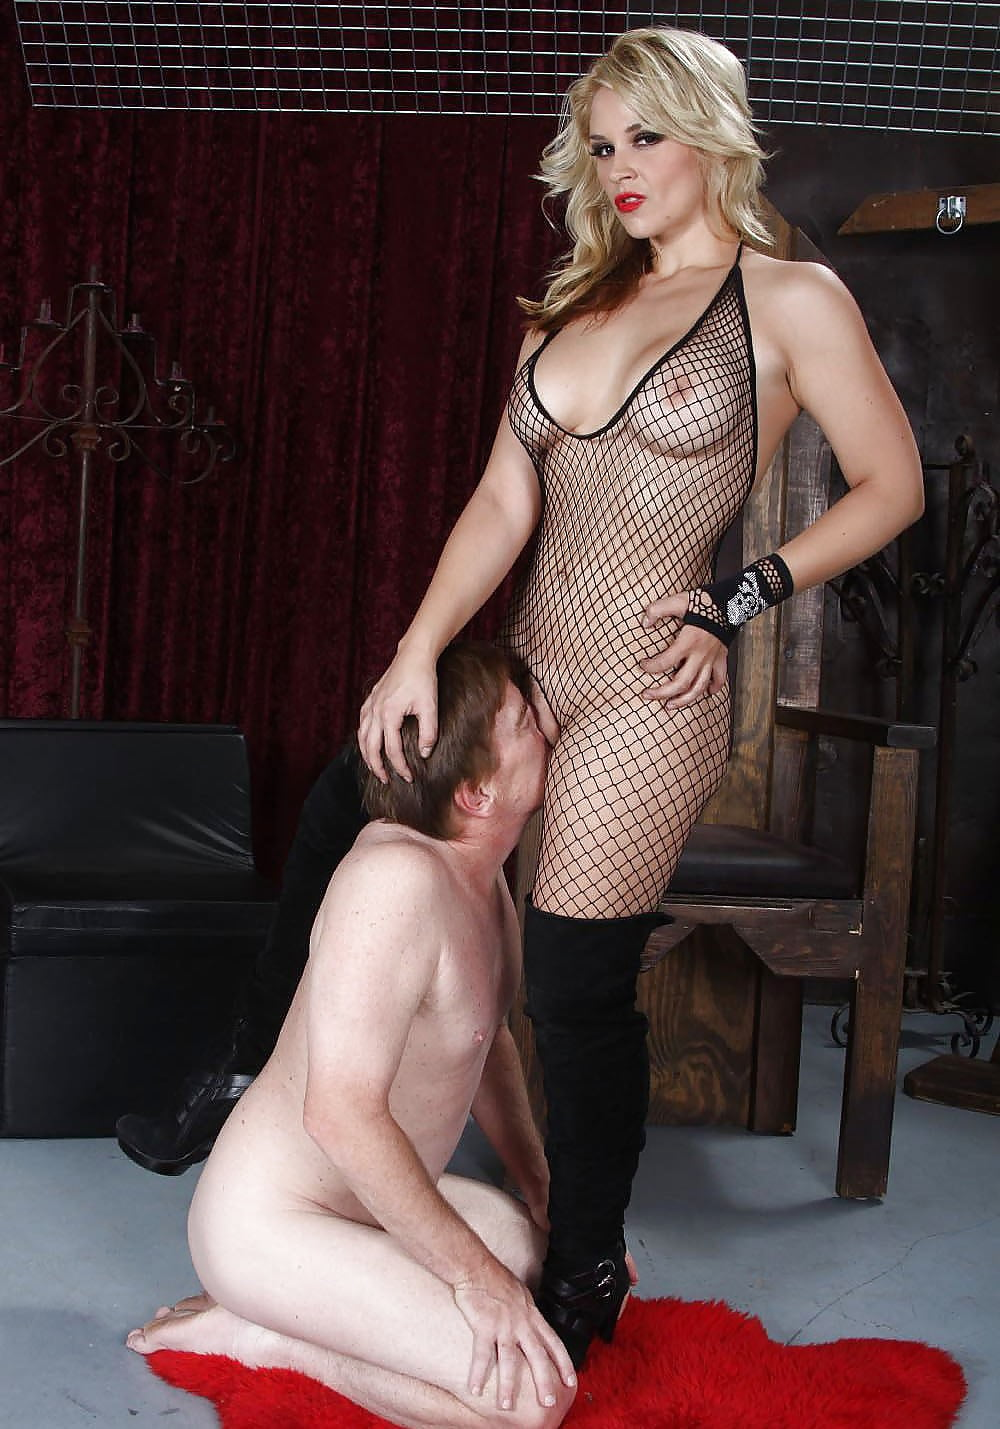 dominate-wives-sex